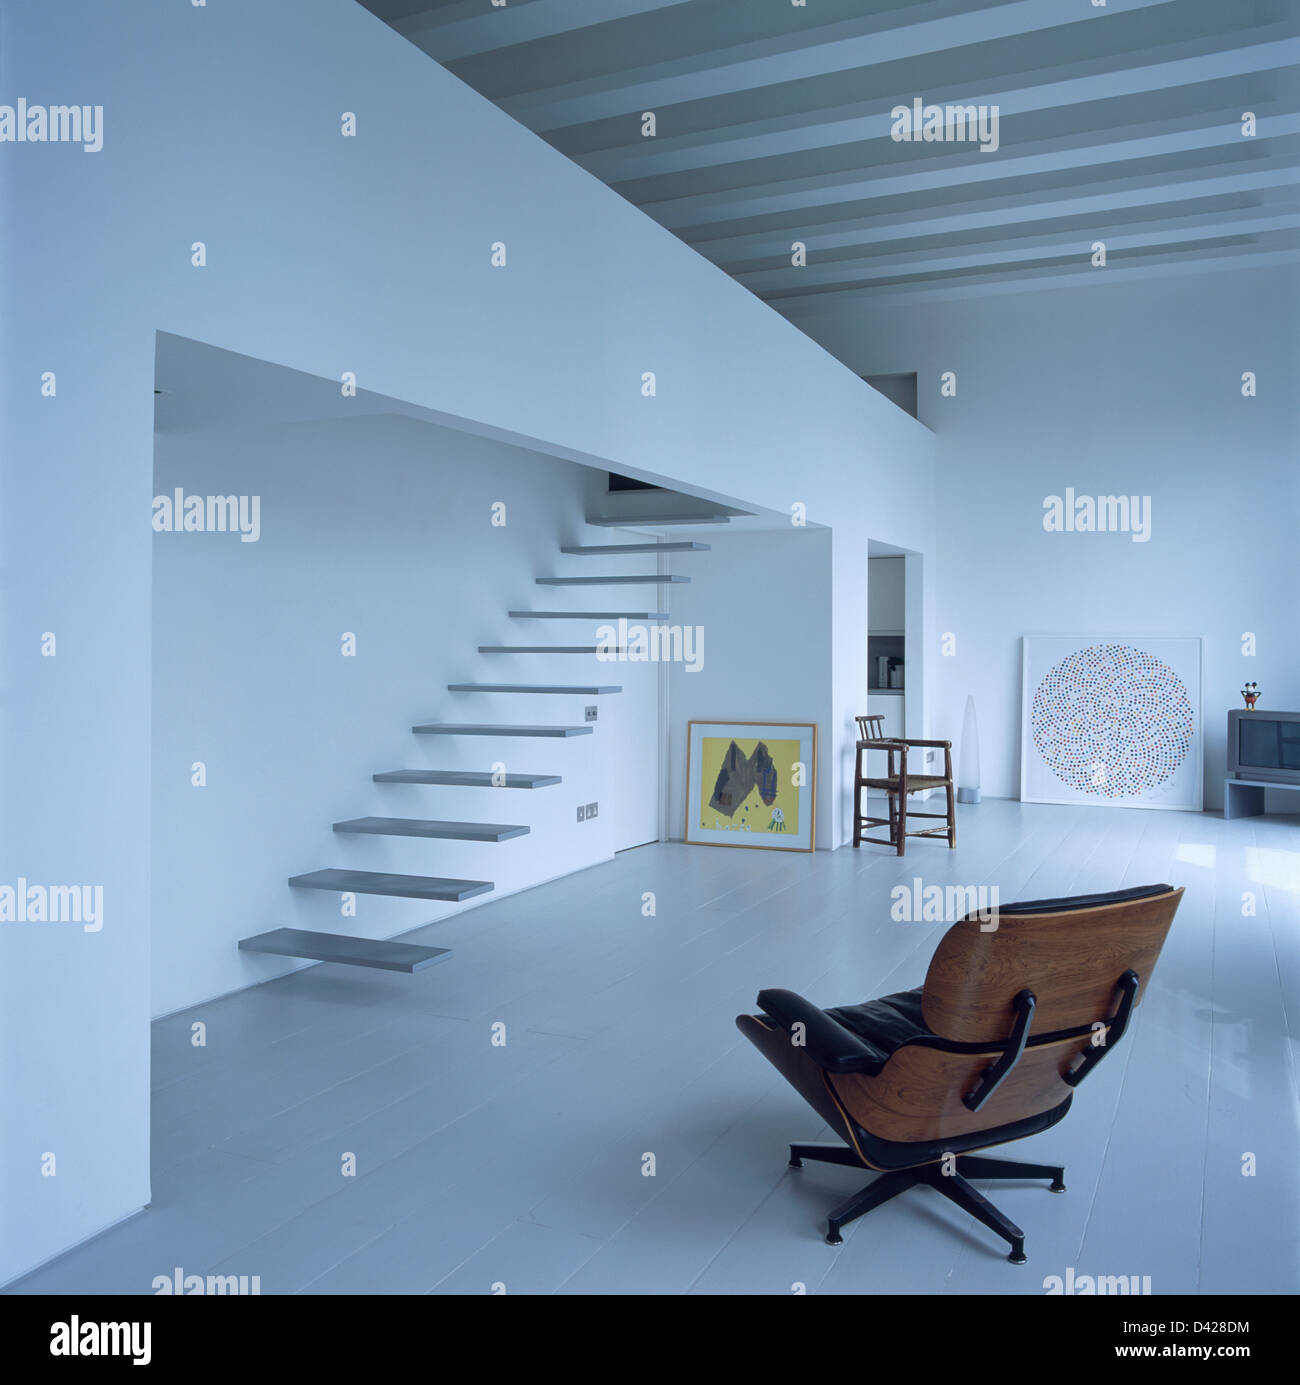 Charles Eames Lounge Chair In Loft Conversion With Floating Staircase And  White Beamed Ceiling